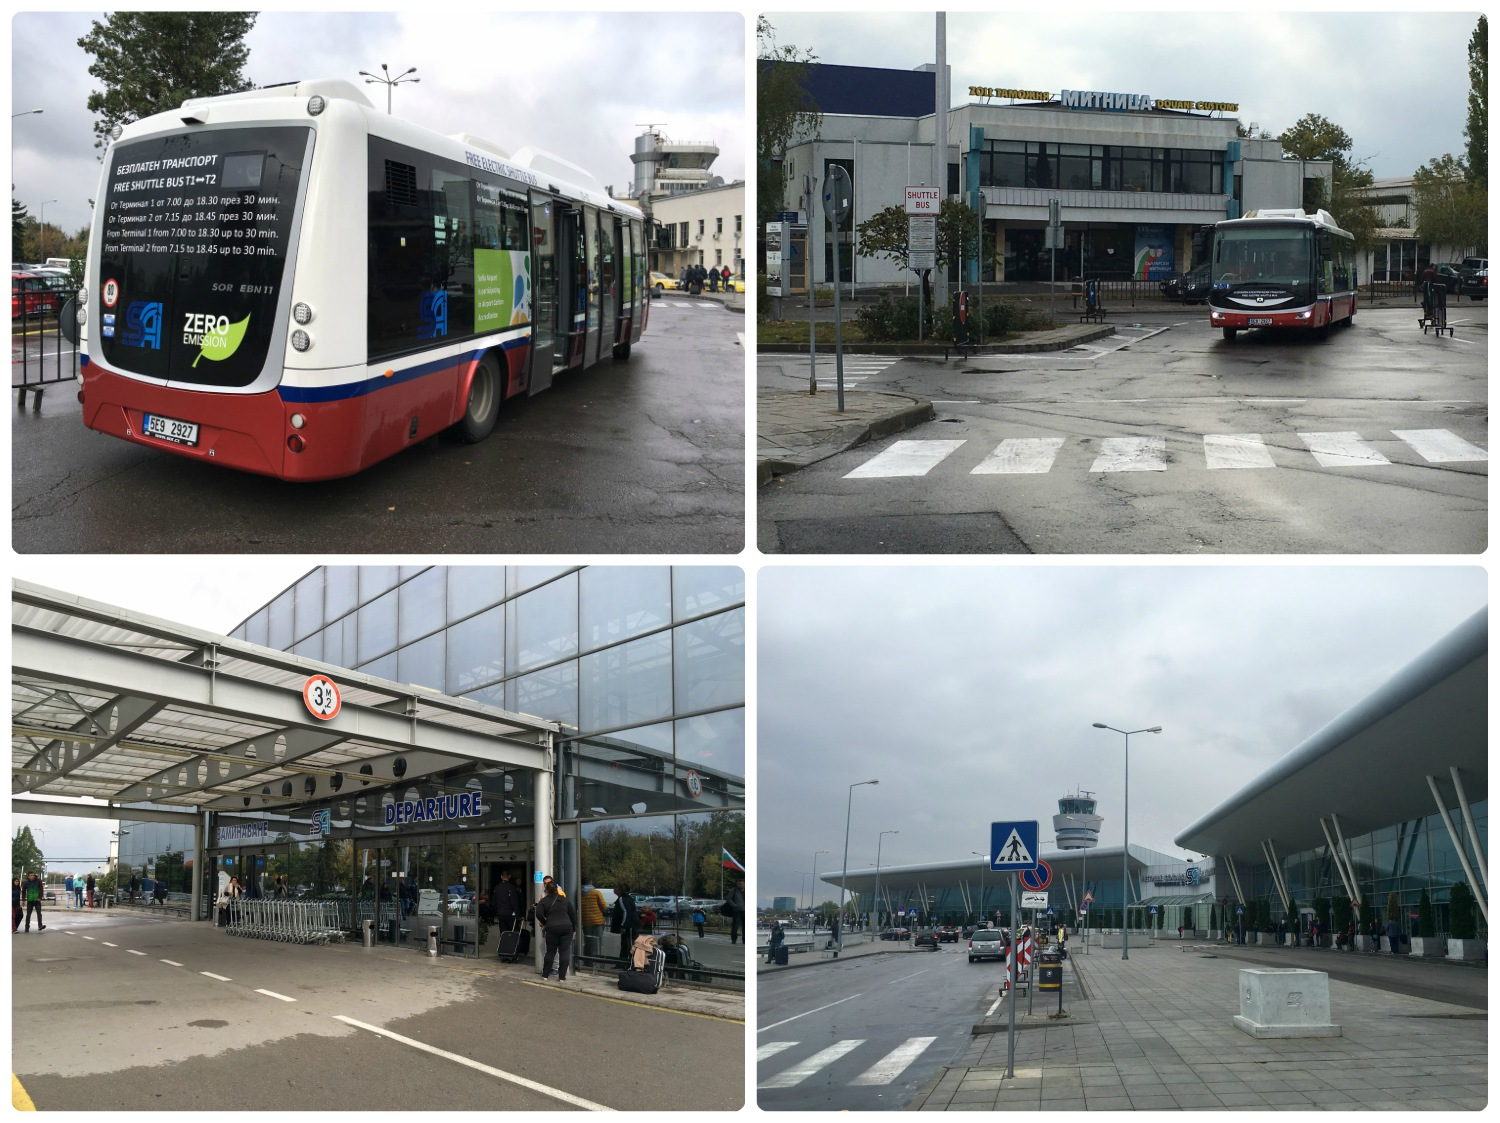 """There's a convienient and free shuttle at the Sofia Airport that takes you to and from Terminal 1 and 2. Pick-up and drop-off locations are outside of each terminal, indicated by the """"Shuttle Bus"""" sign. Terminal 2 is shown on the bottom left and Terminal 1 is shown on the bottom right."""